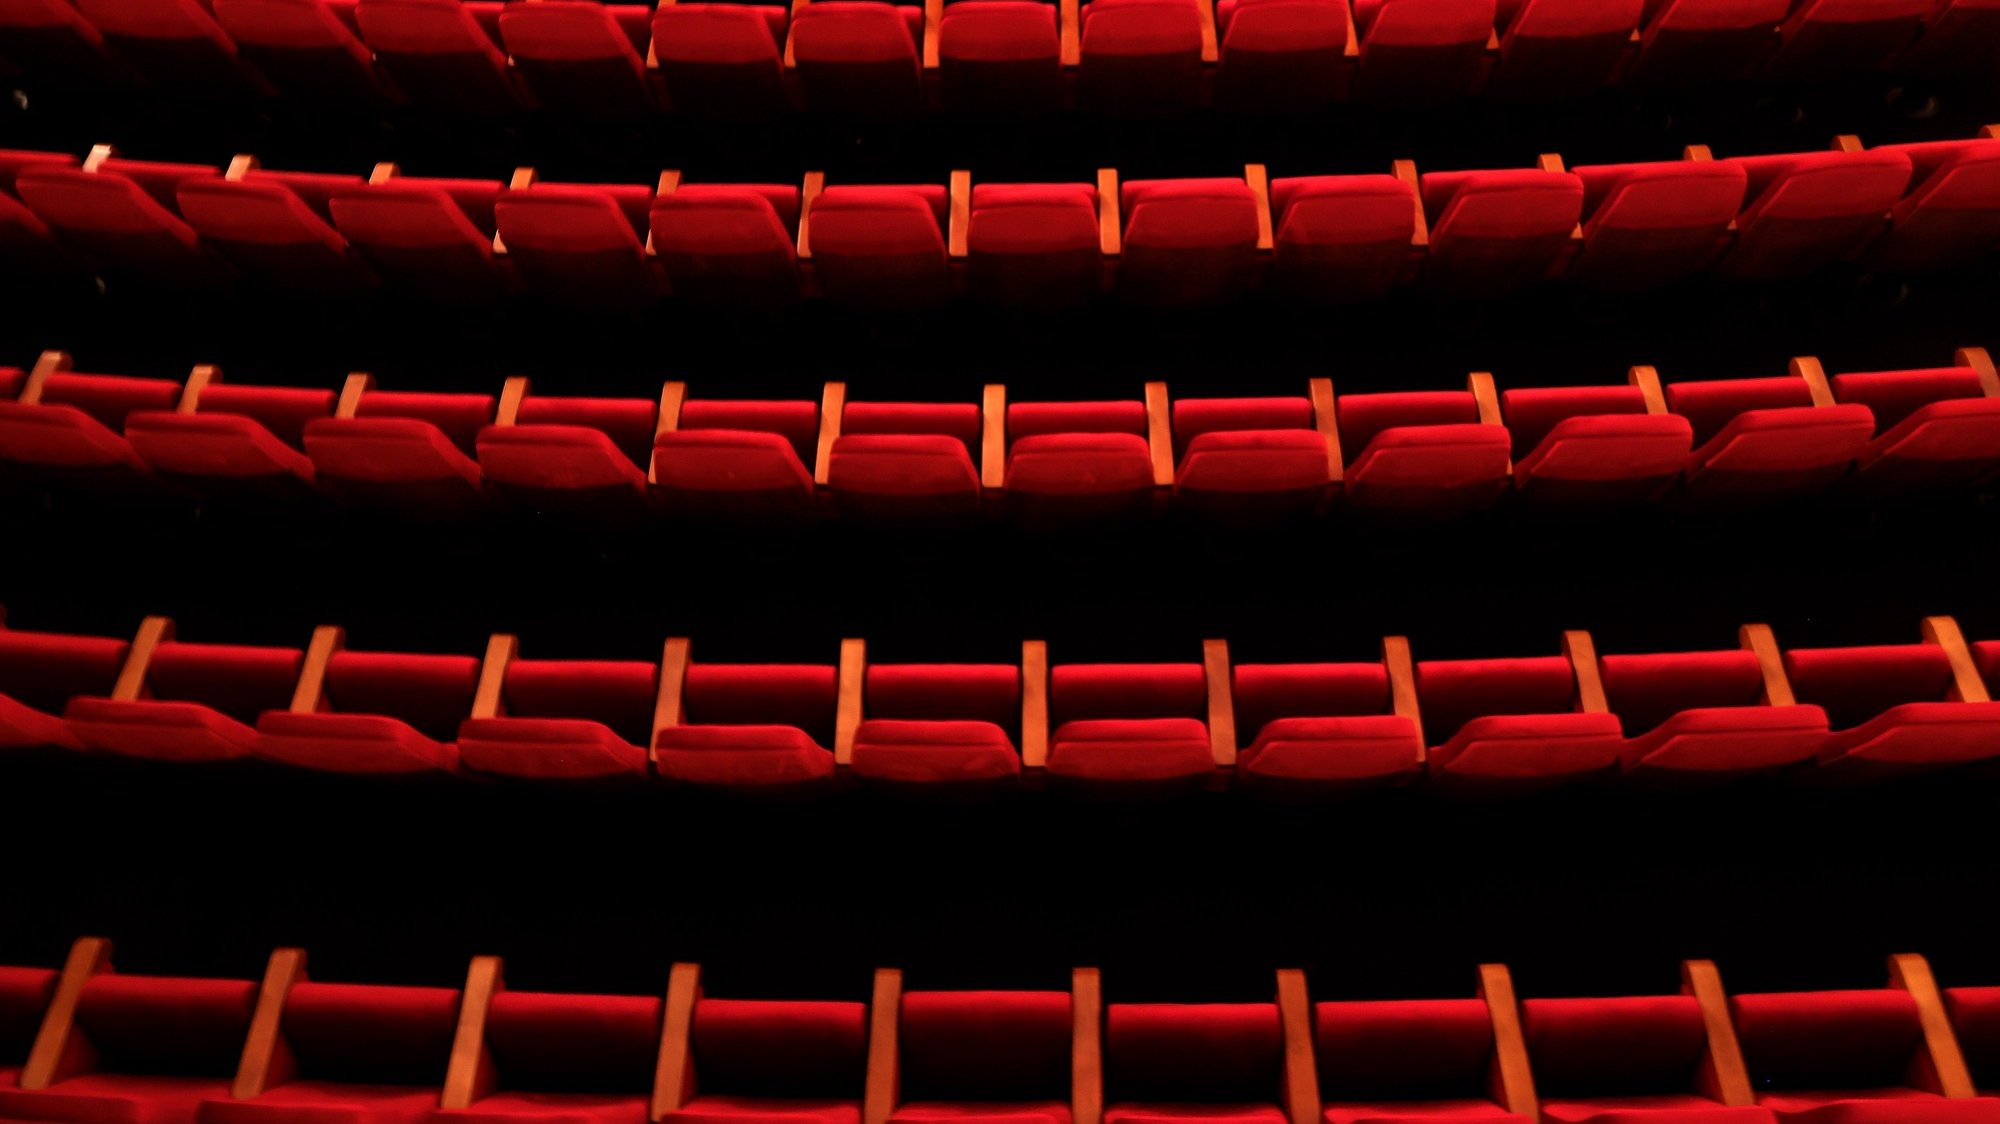 epa08829443 Empty seats at the Lichtburg Cinema in Essen, Germany, 19 November 2020. Due to an increasing number of cases of the pandemic COVID-19 disease, new nationwide restrictions have been announced to counter a surge in infections, such as closing cinemas for a month.  EPA/FRIEDEMANN VOGEL